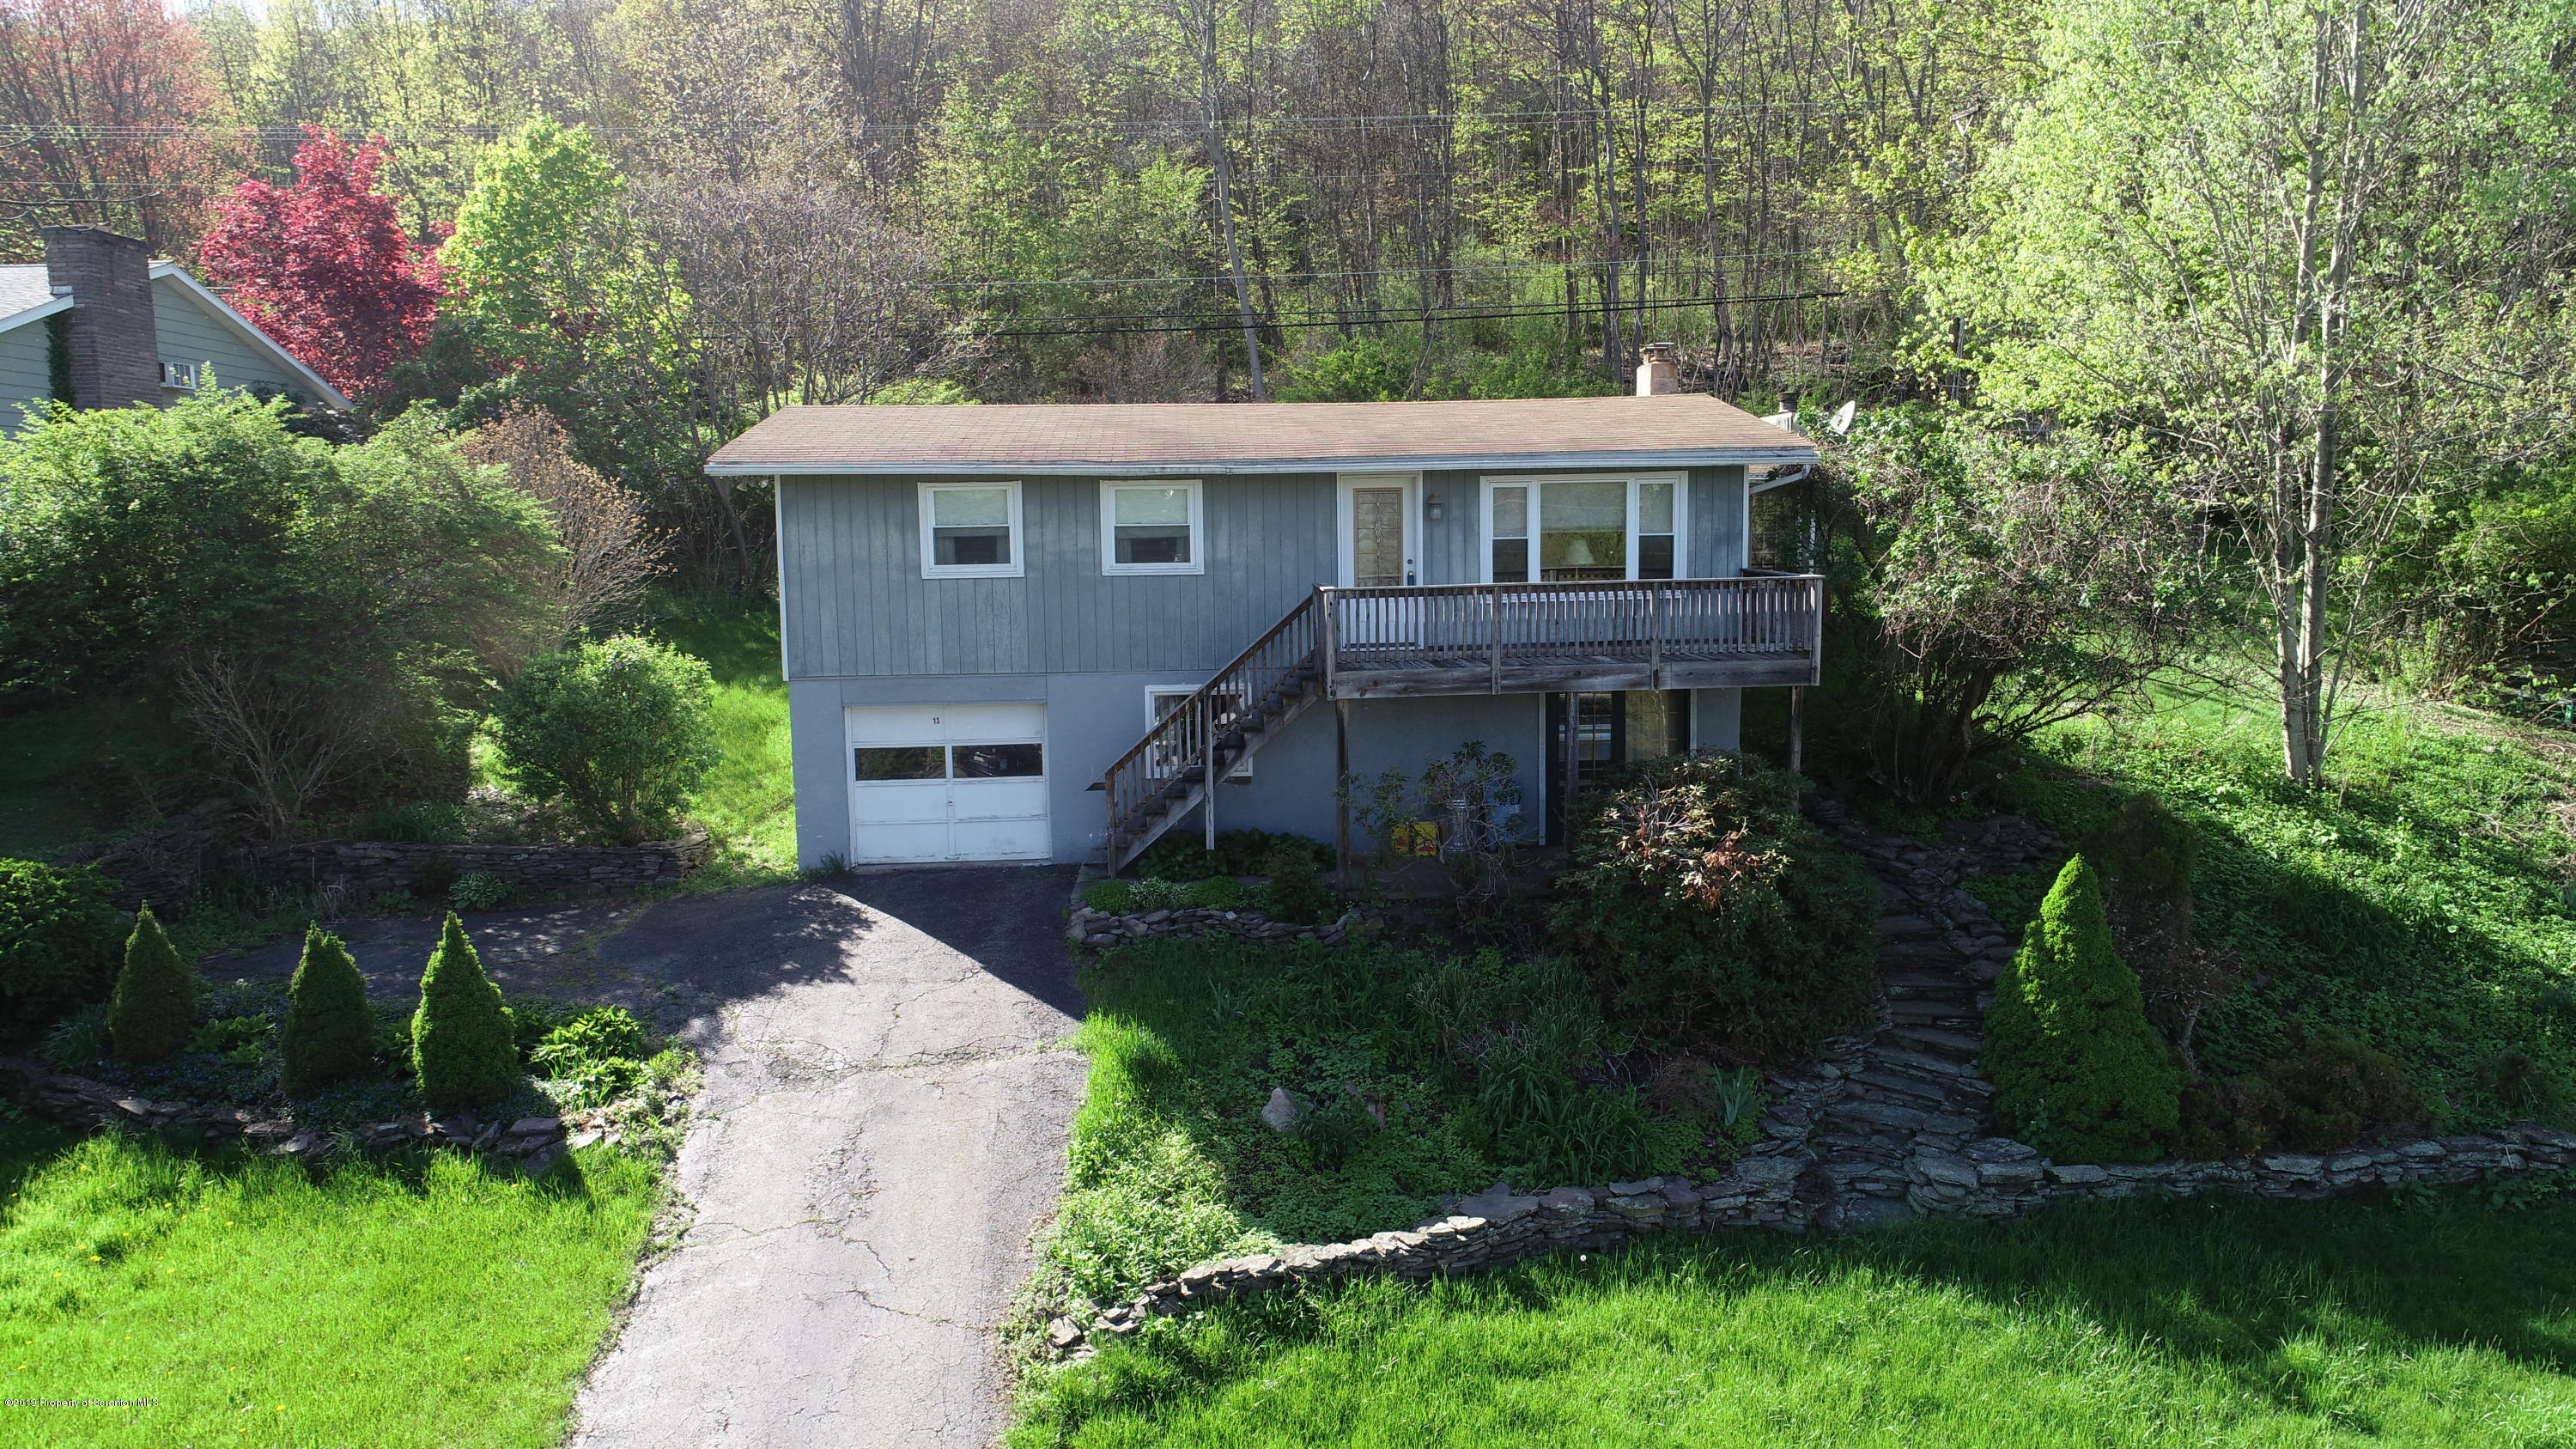 13 Lakeview Dr, Tunkhannock, Pennsylvania 18657, 2 Bedrooms Bedrooms, 5 Rooms Rooms,1 BathroomBathrooms,Single Family,For Sale,Lakeview,18-5771